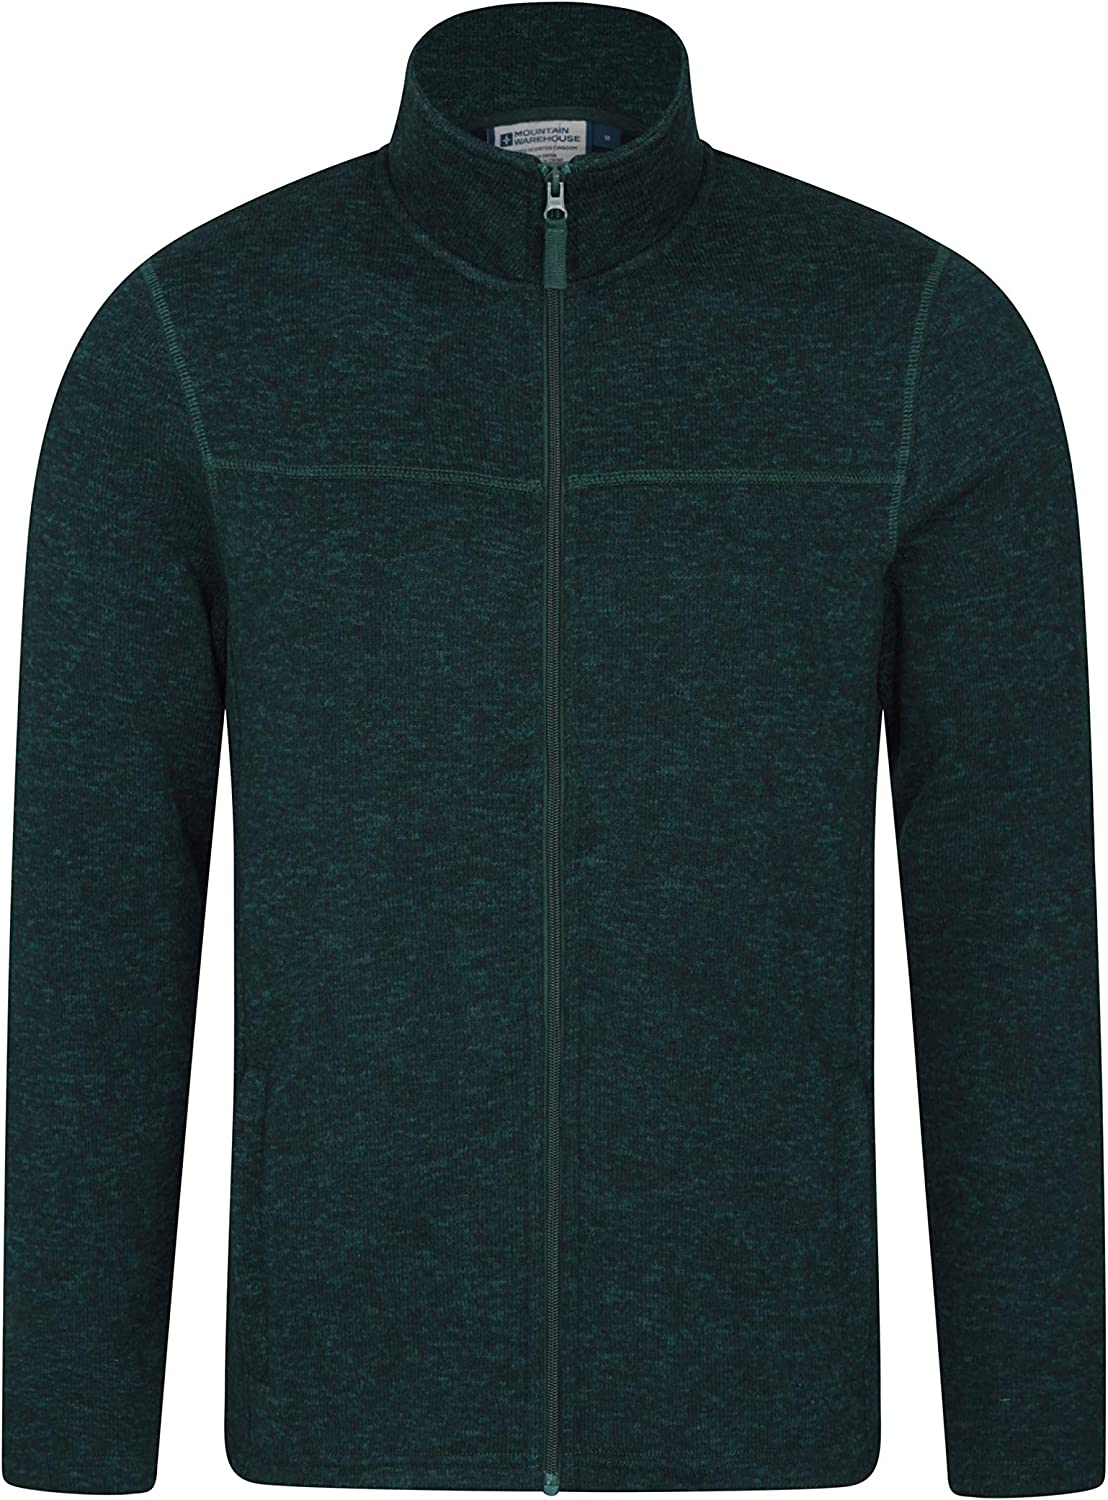 Lightweight Micro Fleece Jacket Soft Touch Pullover for Winter Navy L Quick Dry Fleece Breathable Full Zip Jacket Mountain Warehouse Idris Mens Fleece